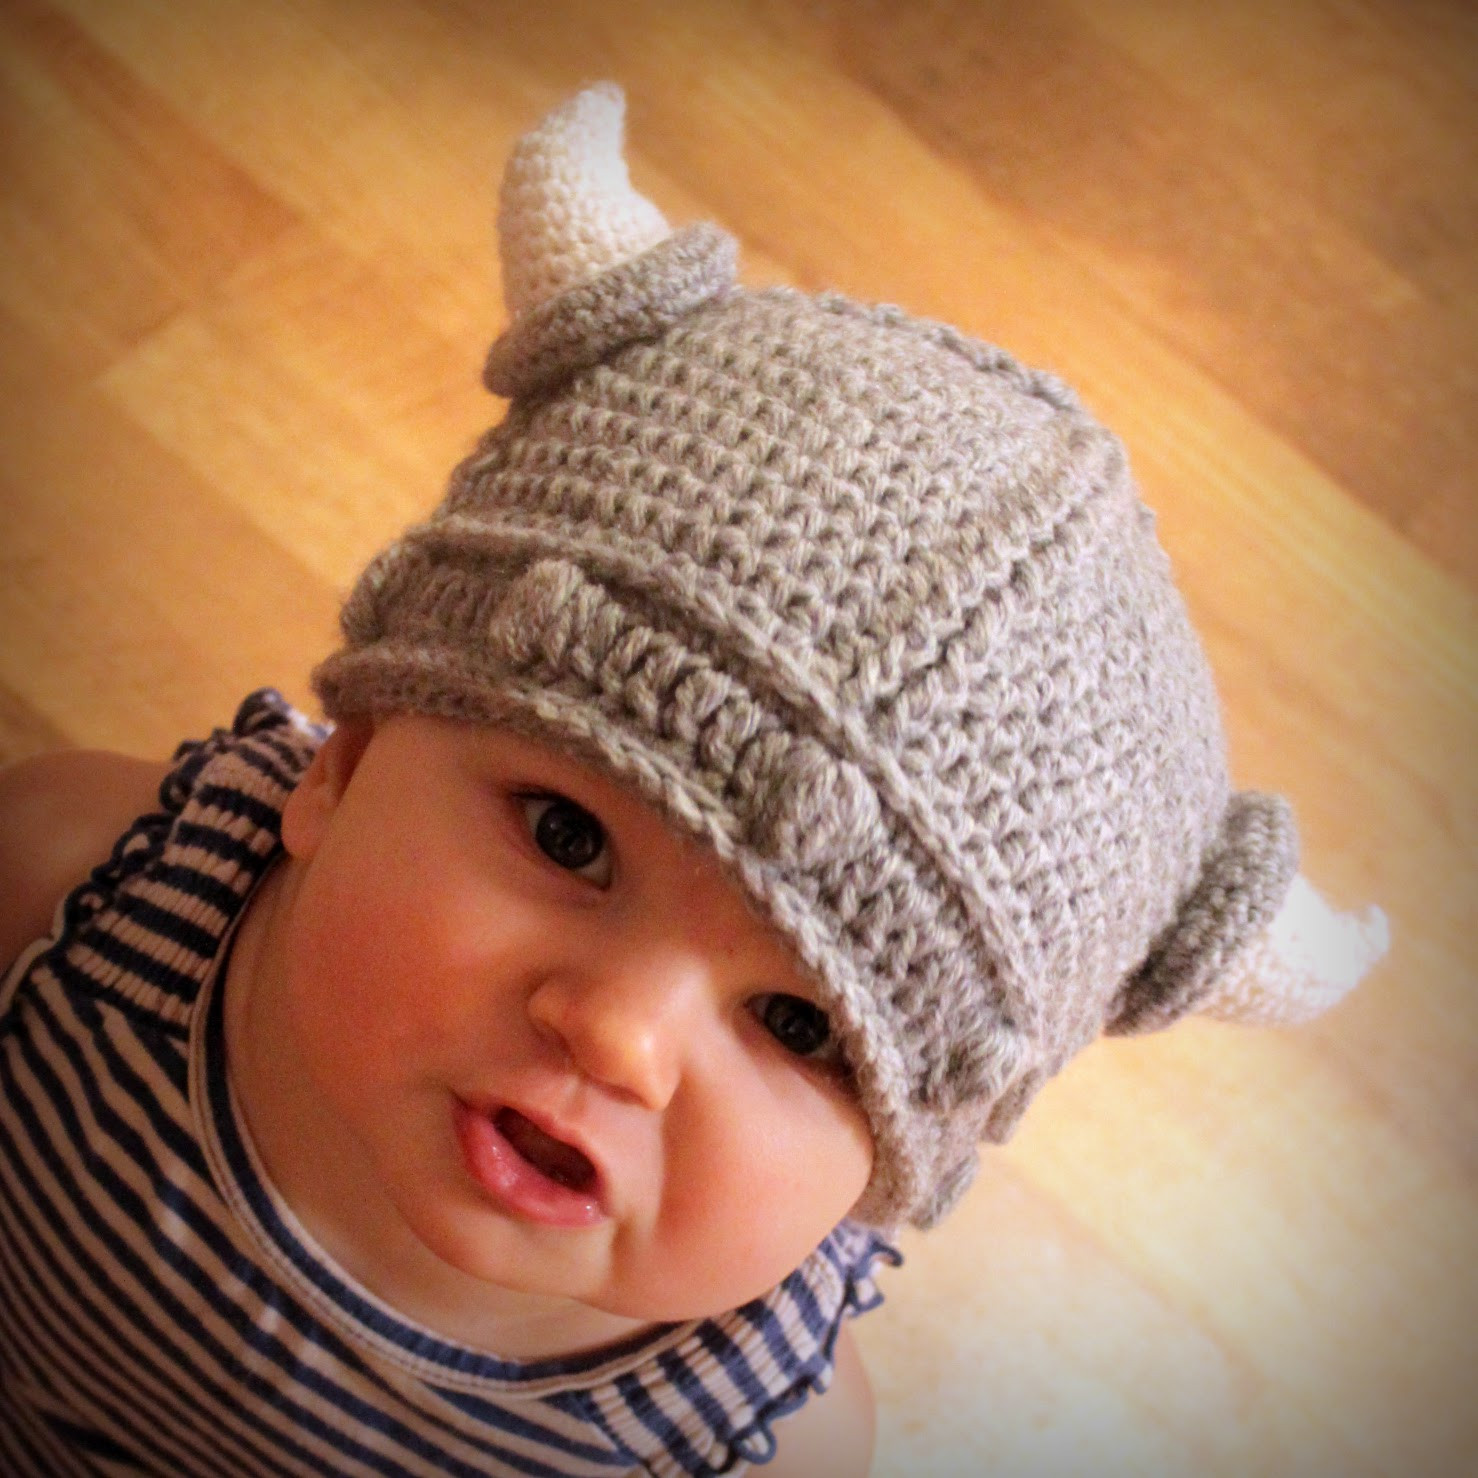 Crochet Viking Hat Pattern Awesome Crochet for Free Lael Viking Hat Size Newborn Adult Of Luxury 48 Images Crochet Viking Hat Pattern